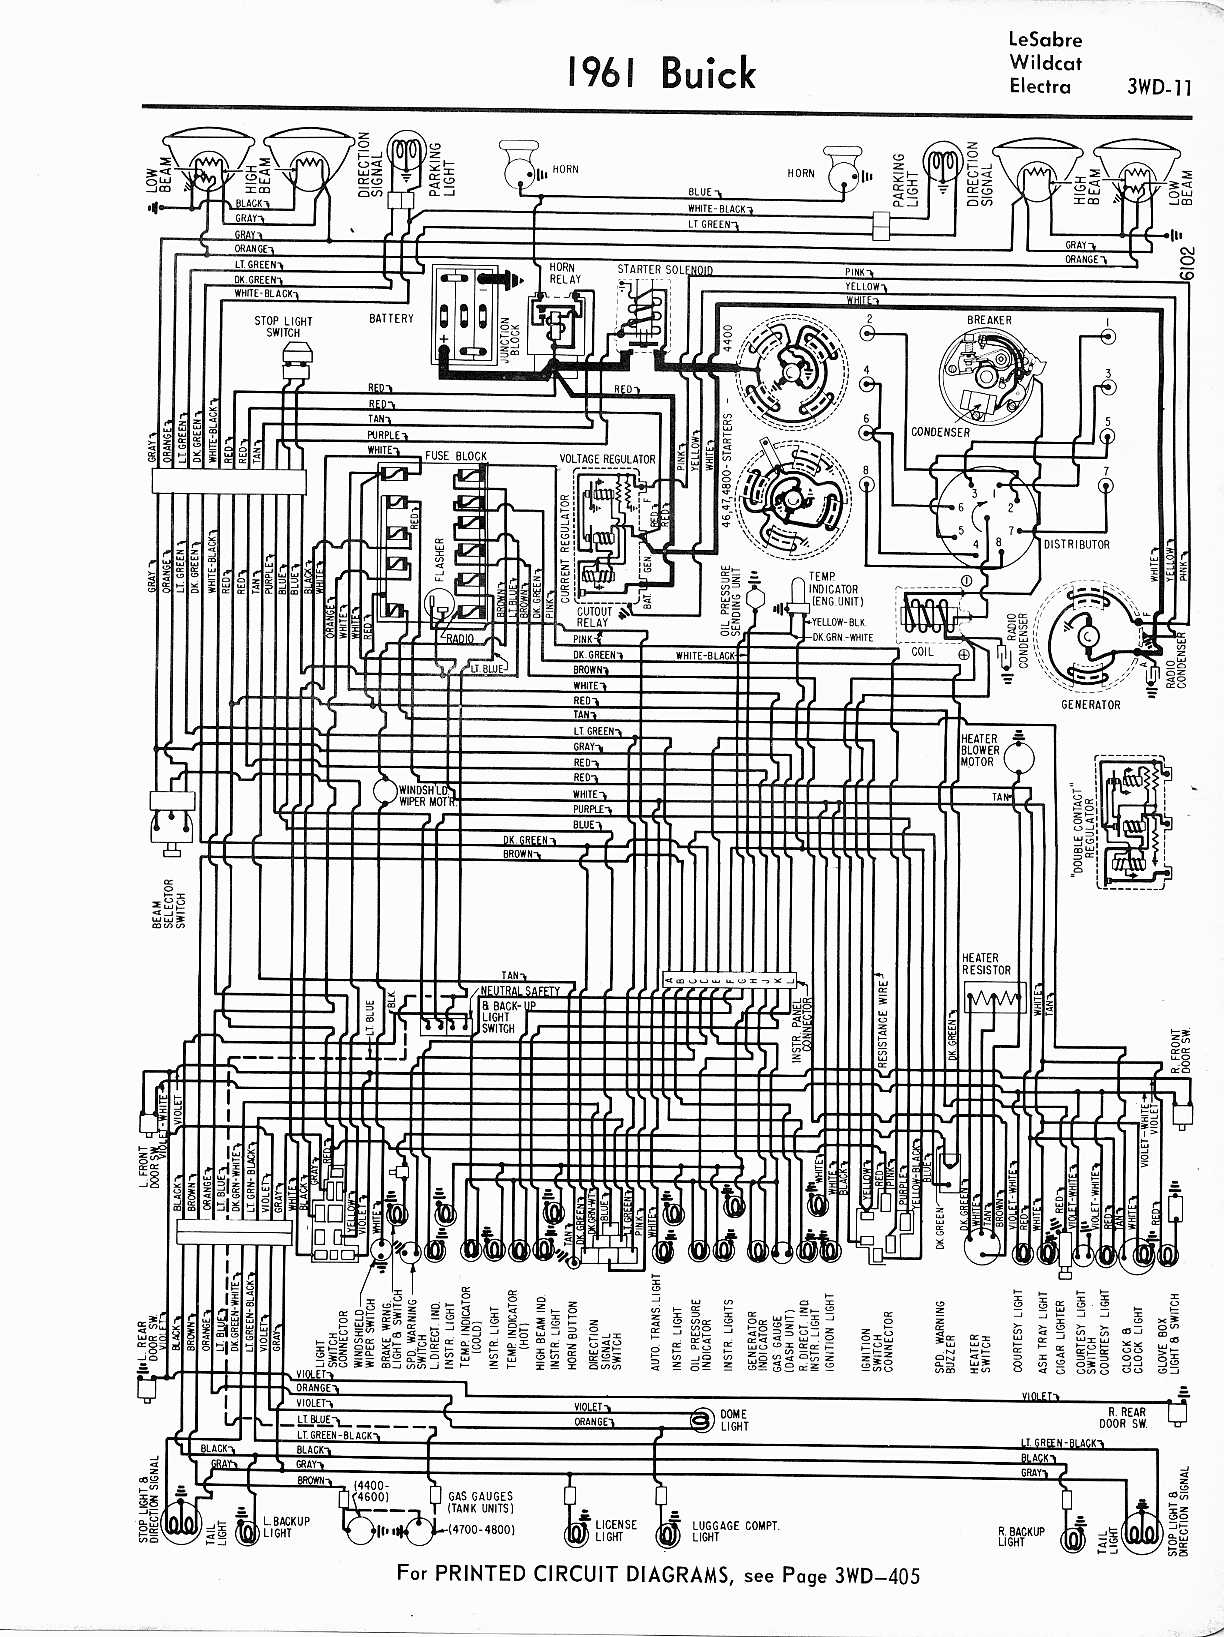 buick wiring diagrams 1957 1965 rh oldcarmanualproject com 97 buick lesabre wiring diagram 1997 buick lesabre ignition wiring diagram